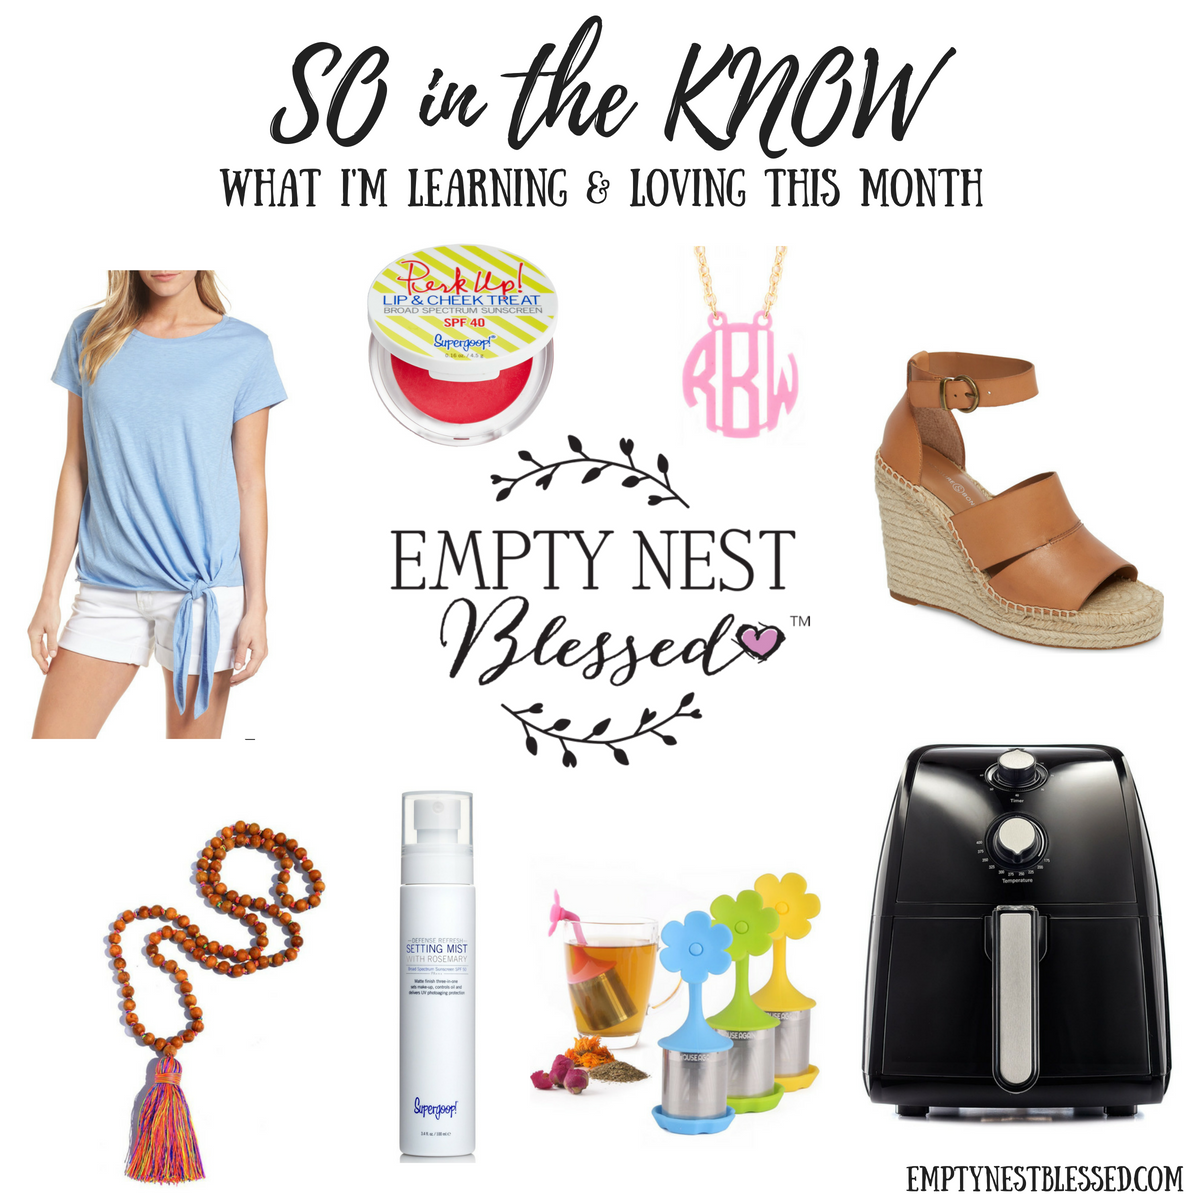 SO in the KNOW – What I'm Learning & Loving in May